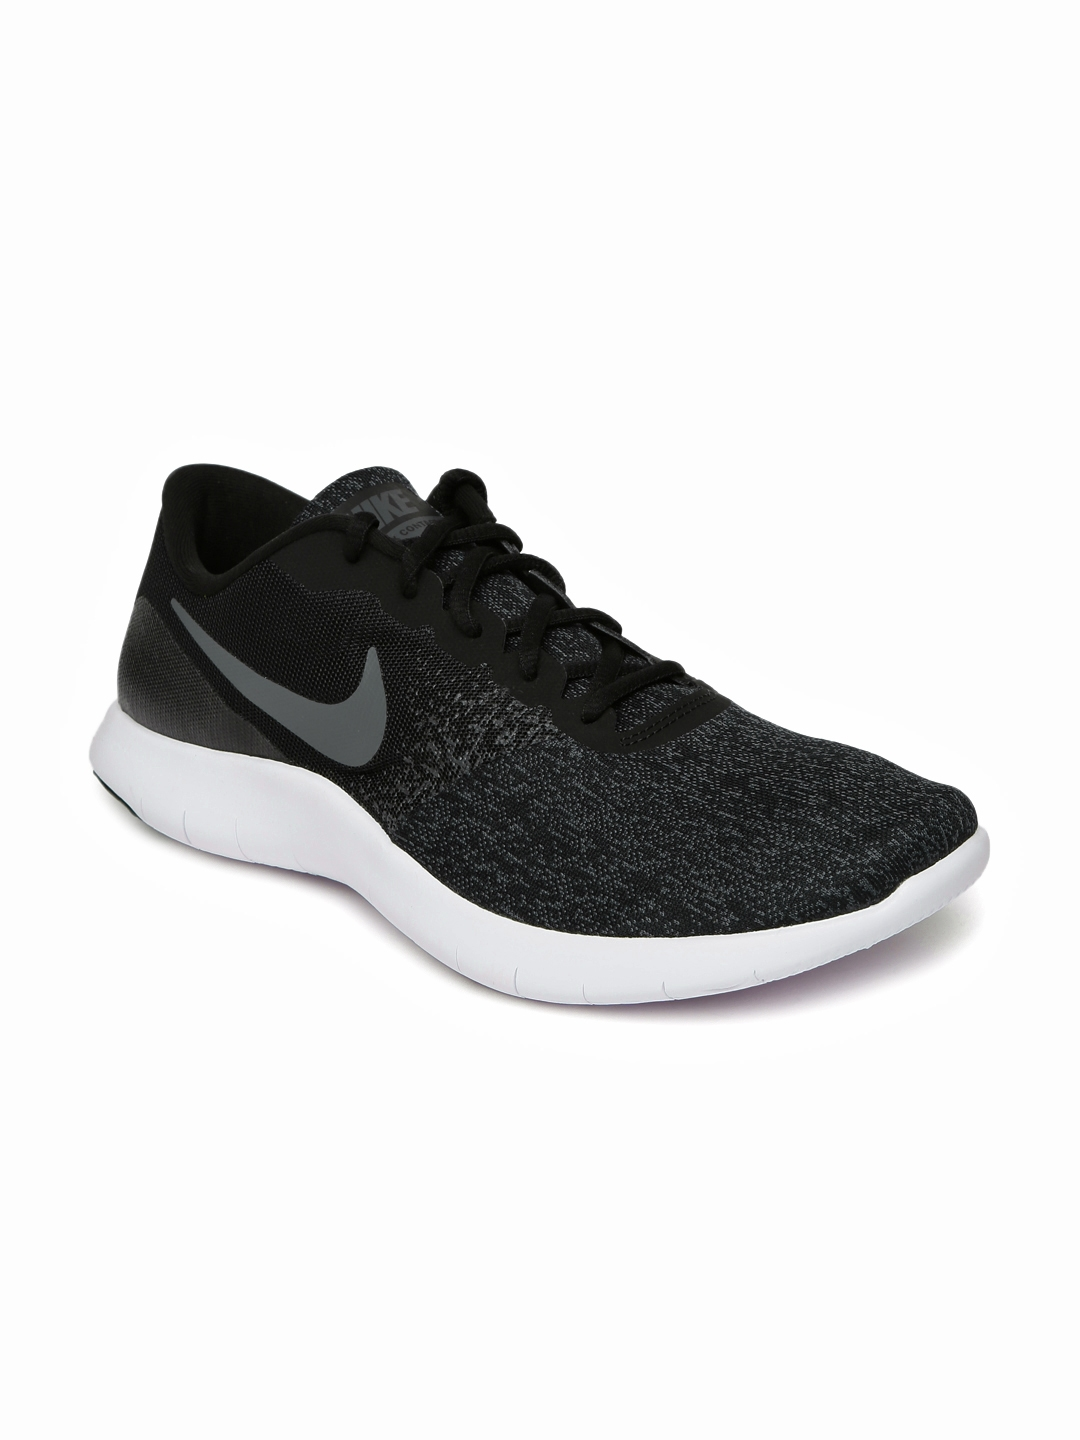 nike shoes for men price in india nike running navis